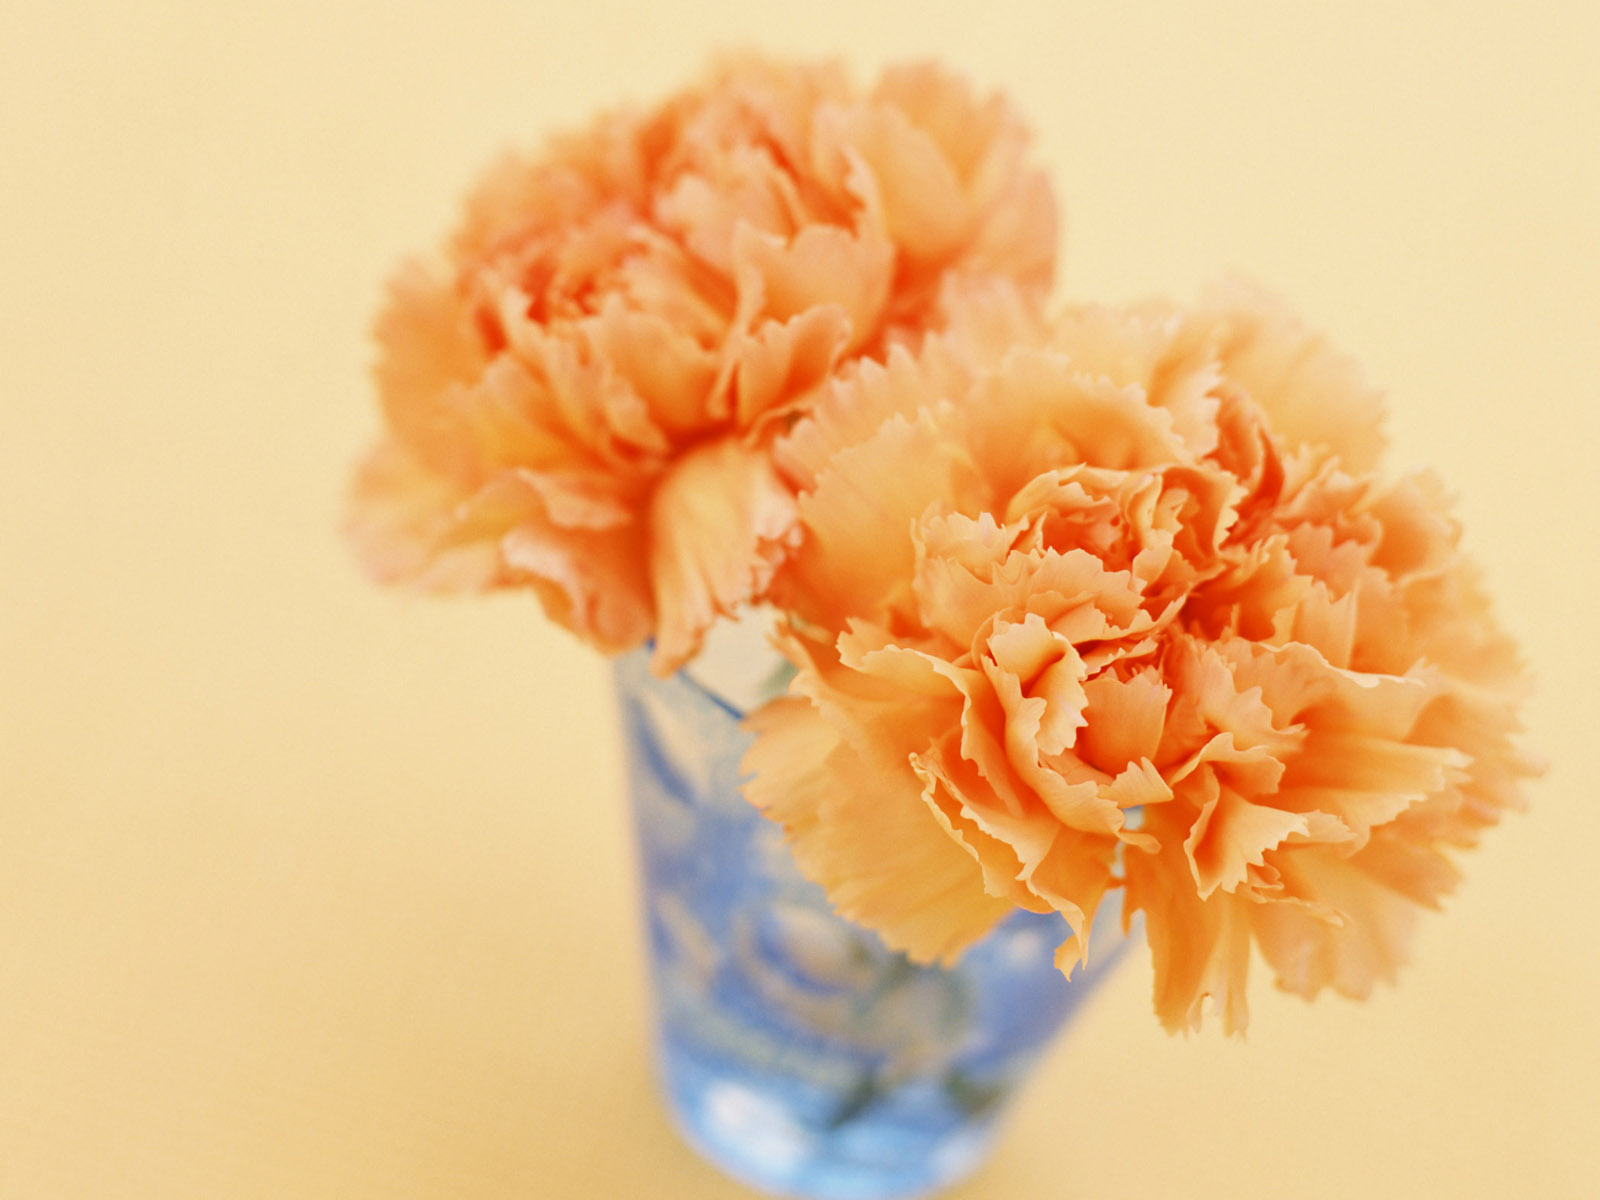 Carnation flowers 3604